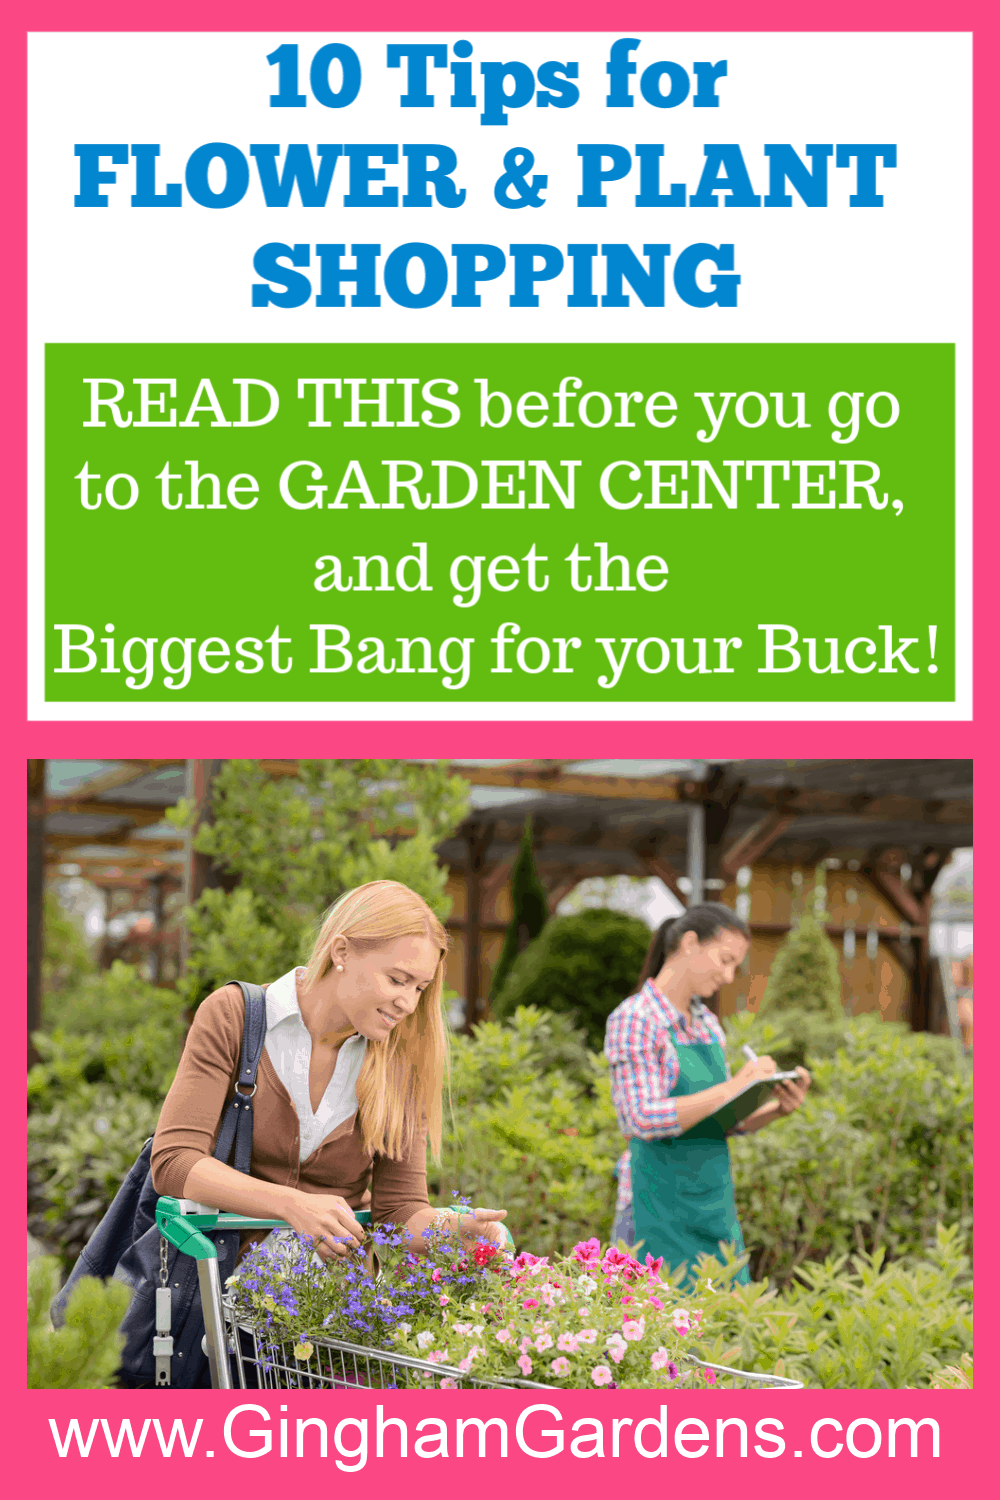 Image of a lady shopping for flowers with text overlay - 10 Tips for Flower & Plant Shopping